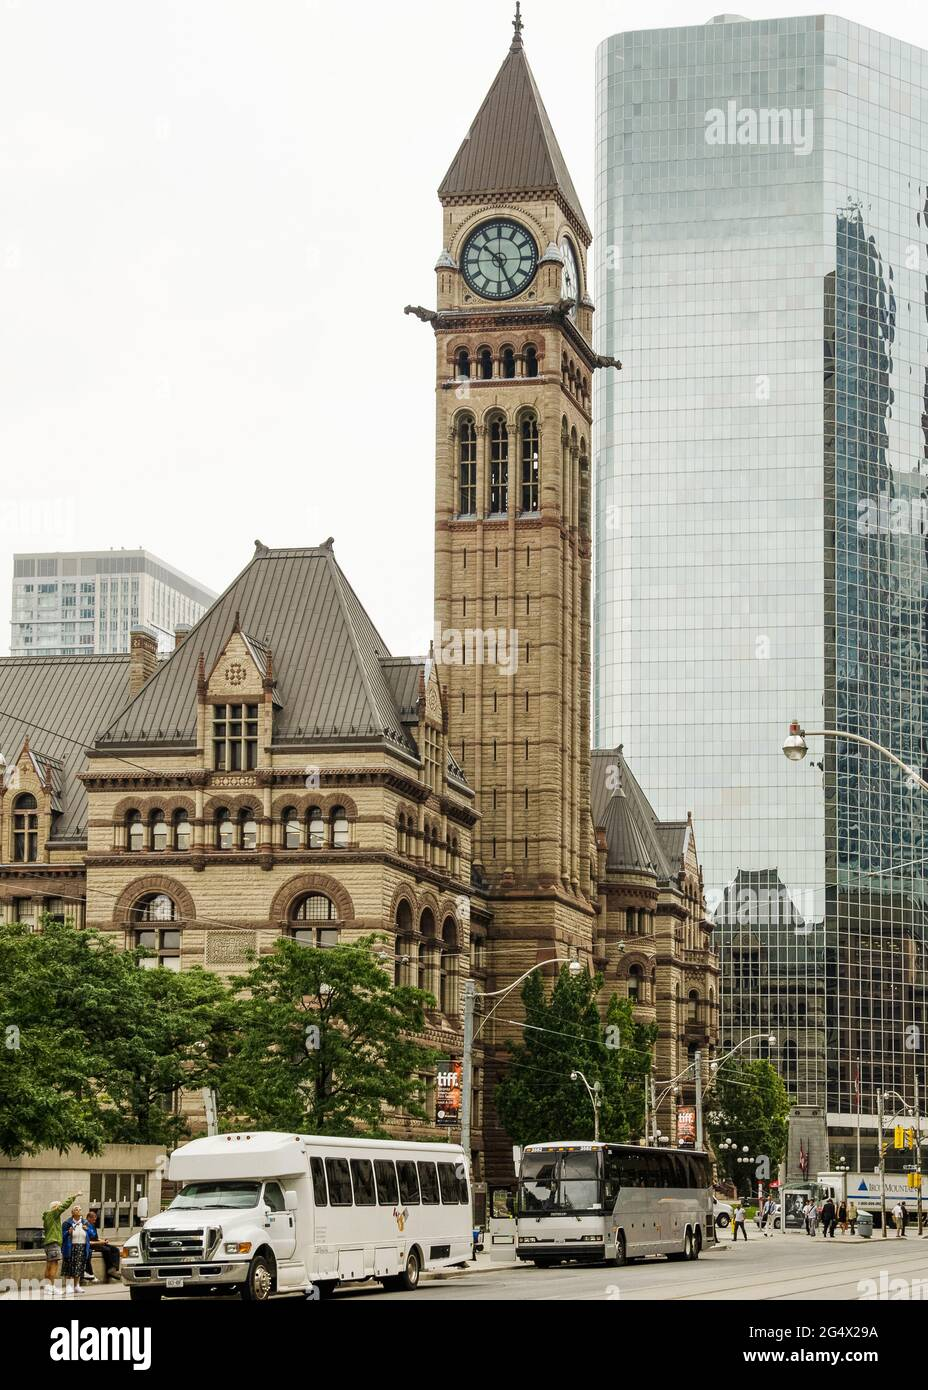 Toronto's Old City Hall was home to its city council from 1899 to 1966 and remains one of the city's most prominent structures. The building is in Que Stock Photo